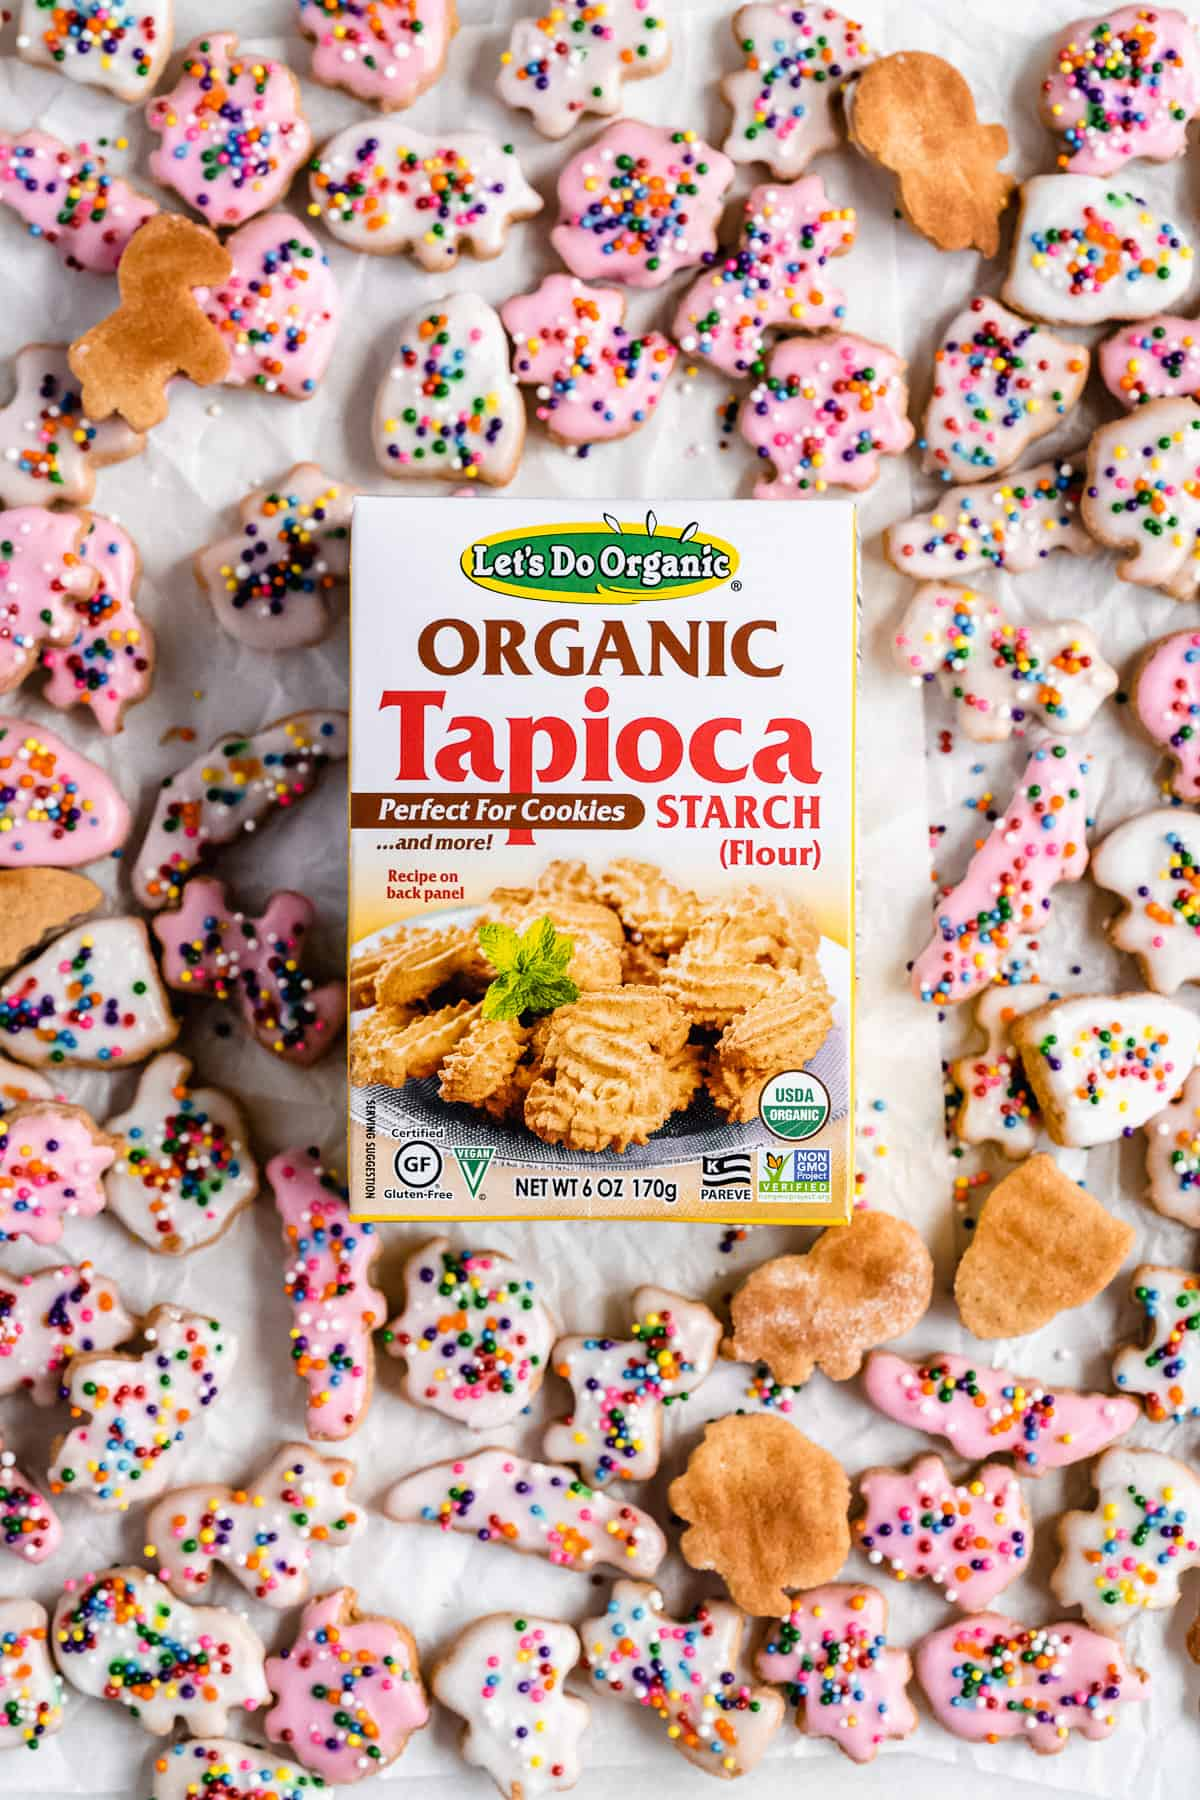 Image of tapioca box on a white surface with animal cracker scattered on the ground.